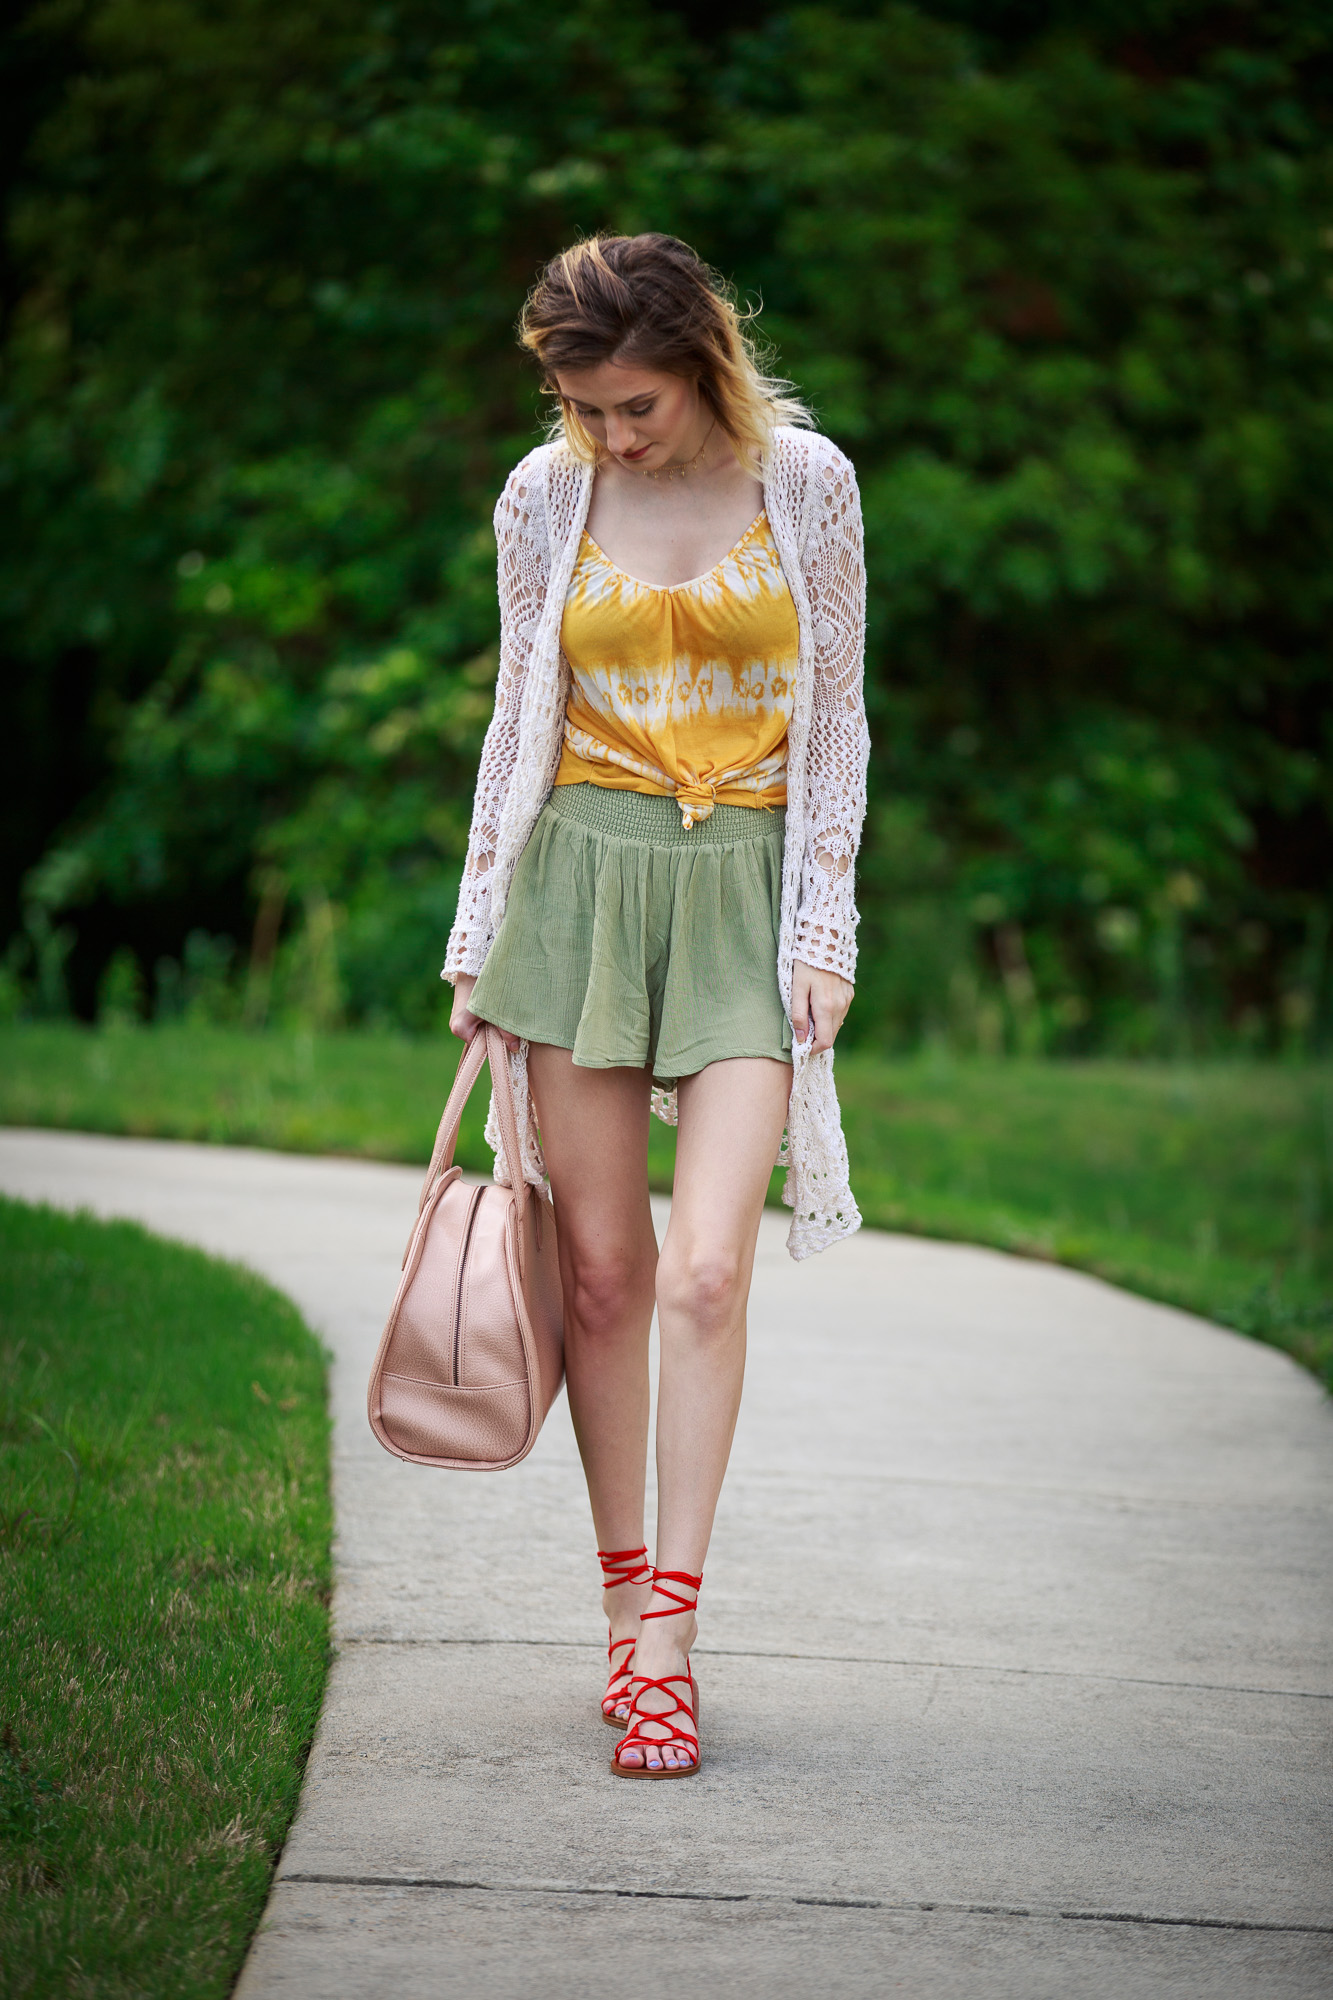 Fashion blogger Jessica Linn from Linn Style wearing Forever21 shorts an H and M tank top tied at the waist, and white knit cardigan, Forever21 scrappy sandals, and carrying a faux leather Matt and Nat purse.